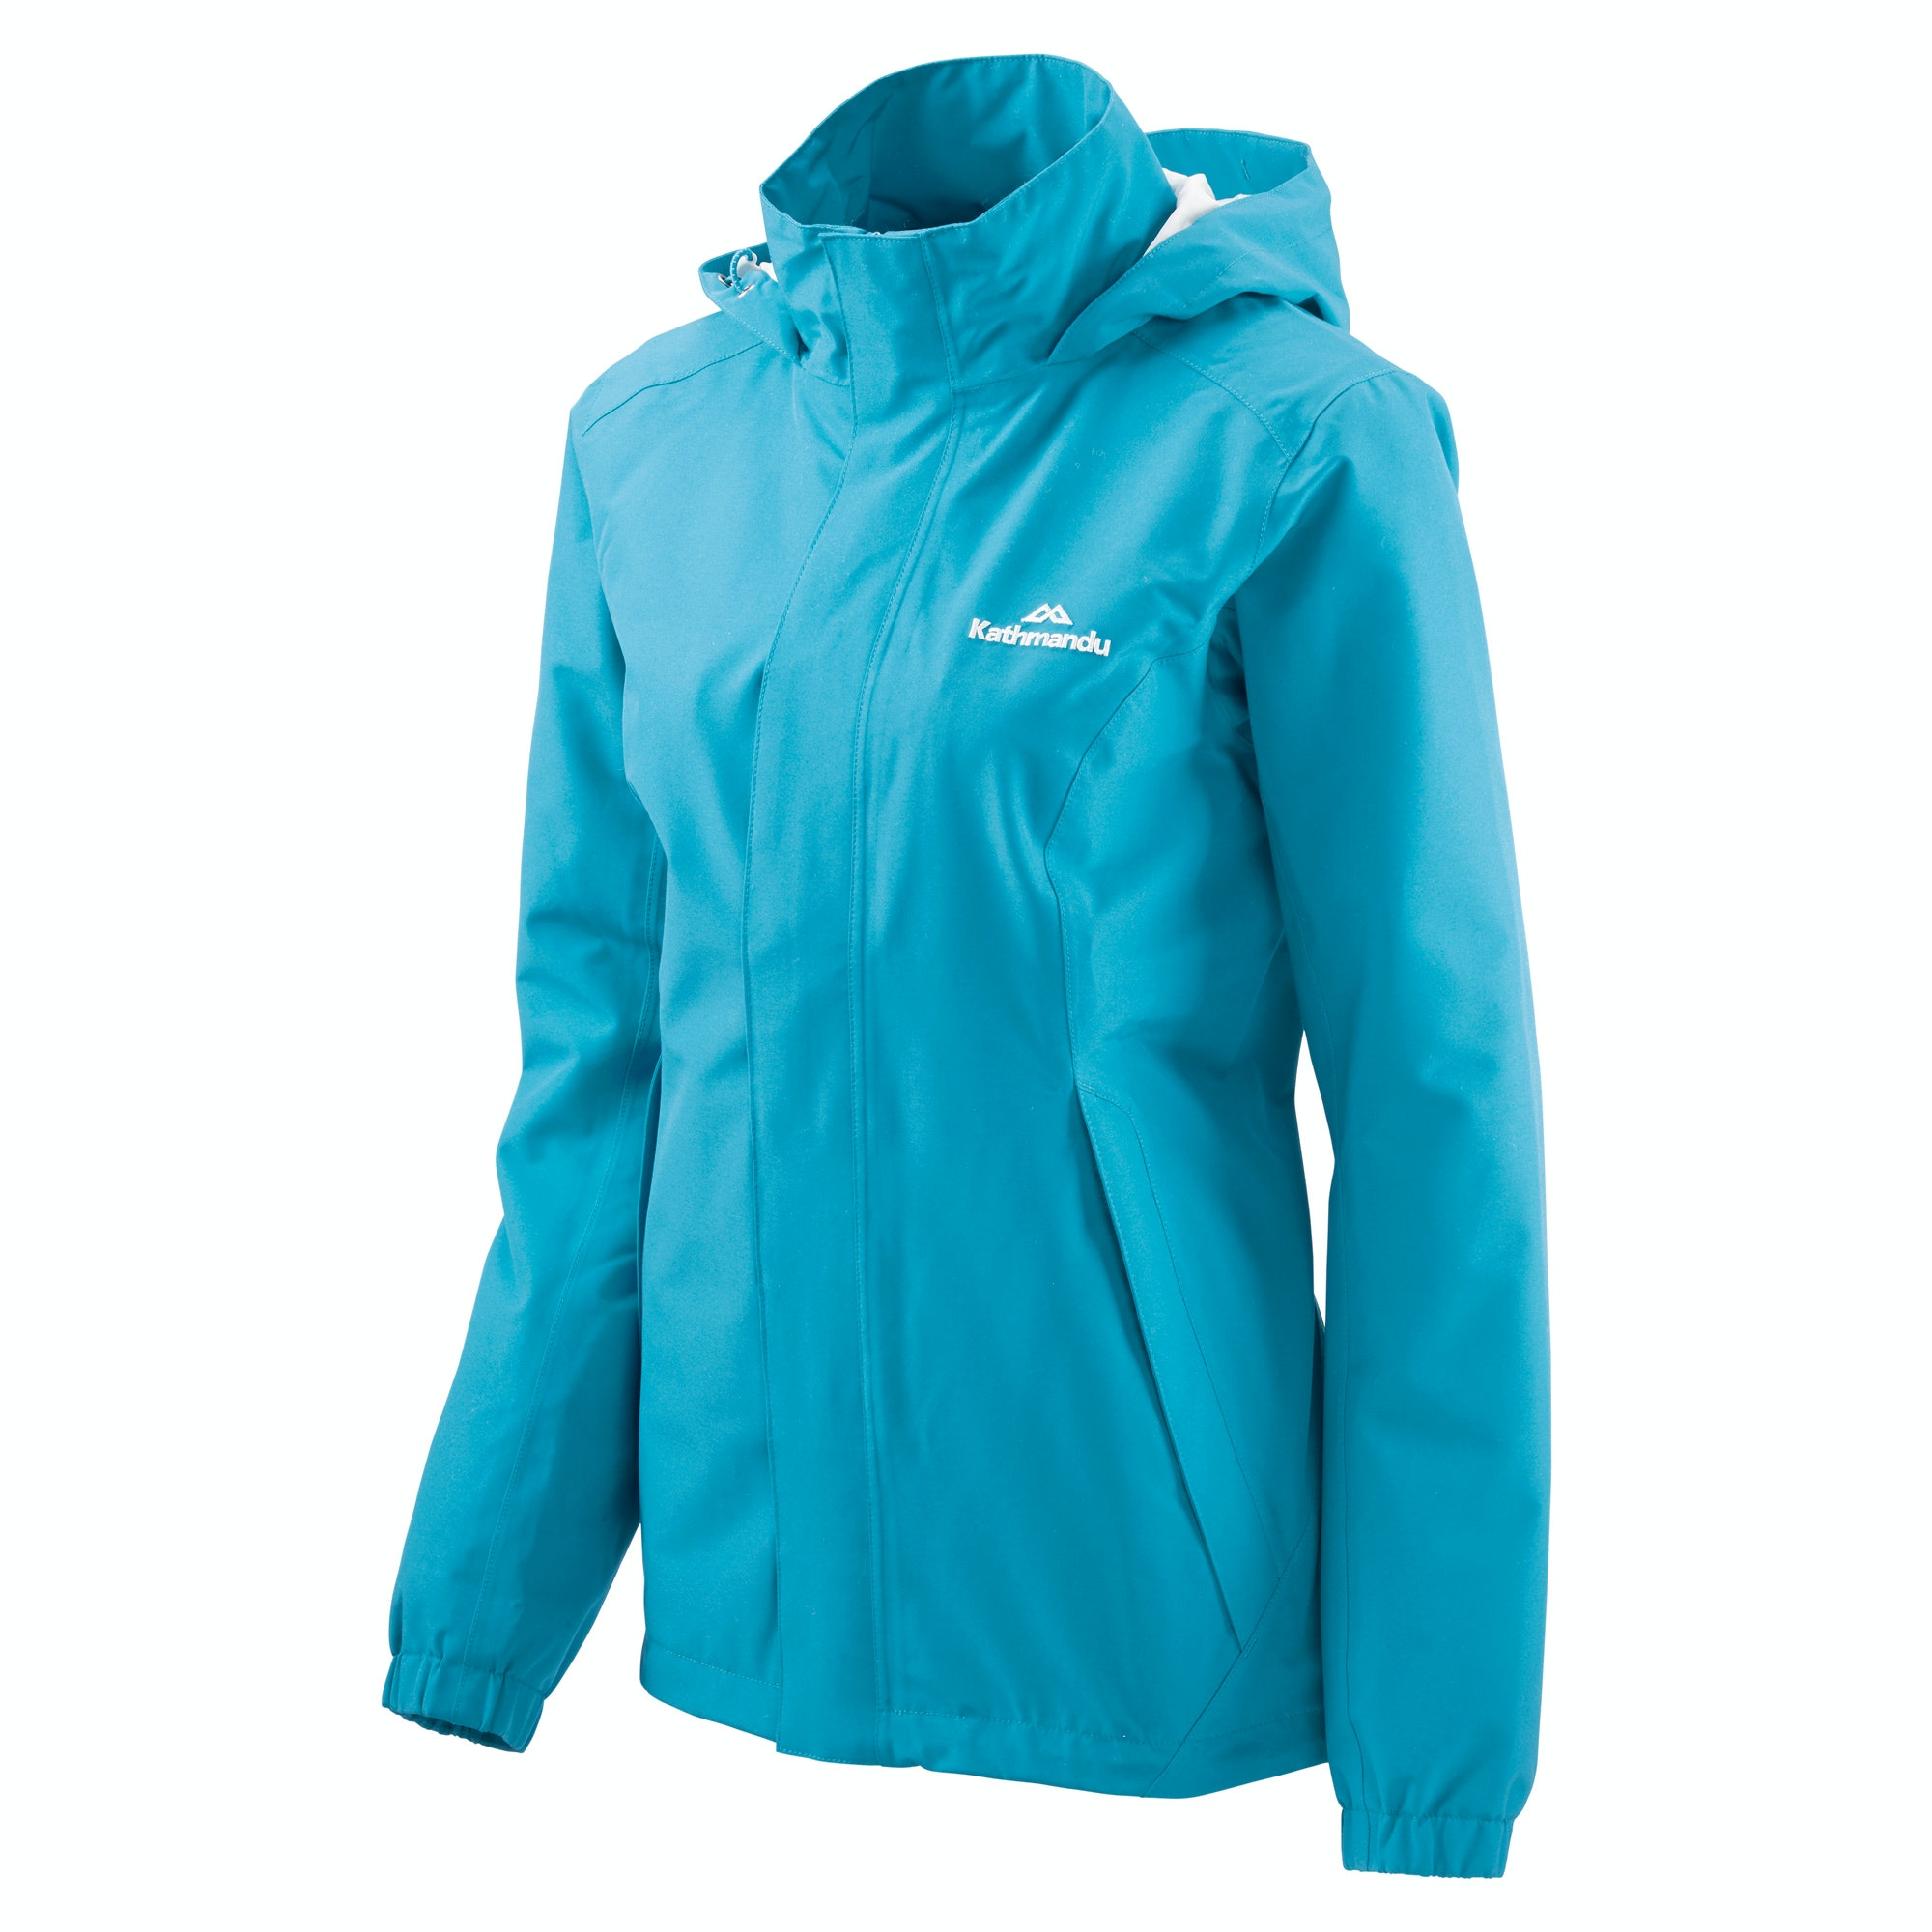 Andulo Women's 2 Layer Waterproof Jacket - Malibu Blue